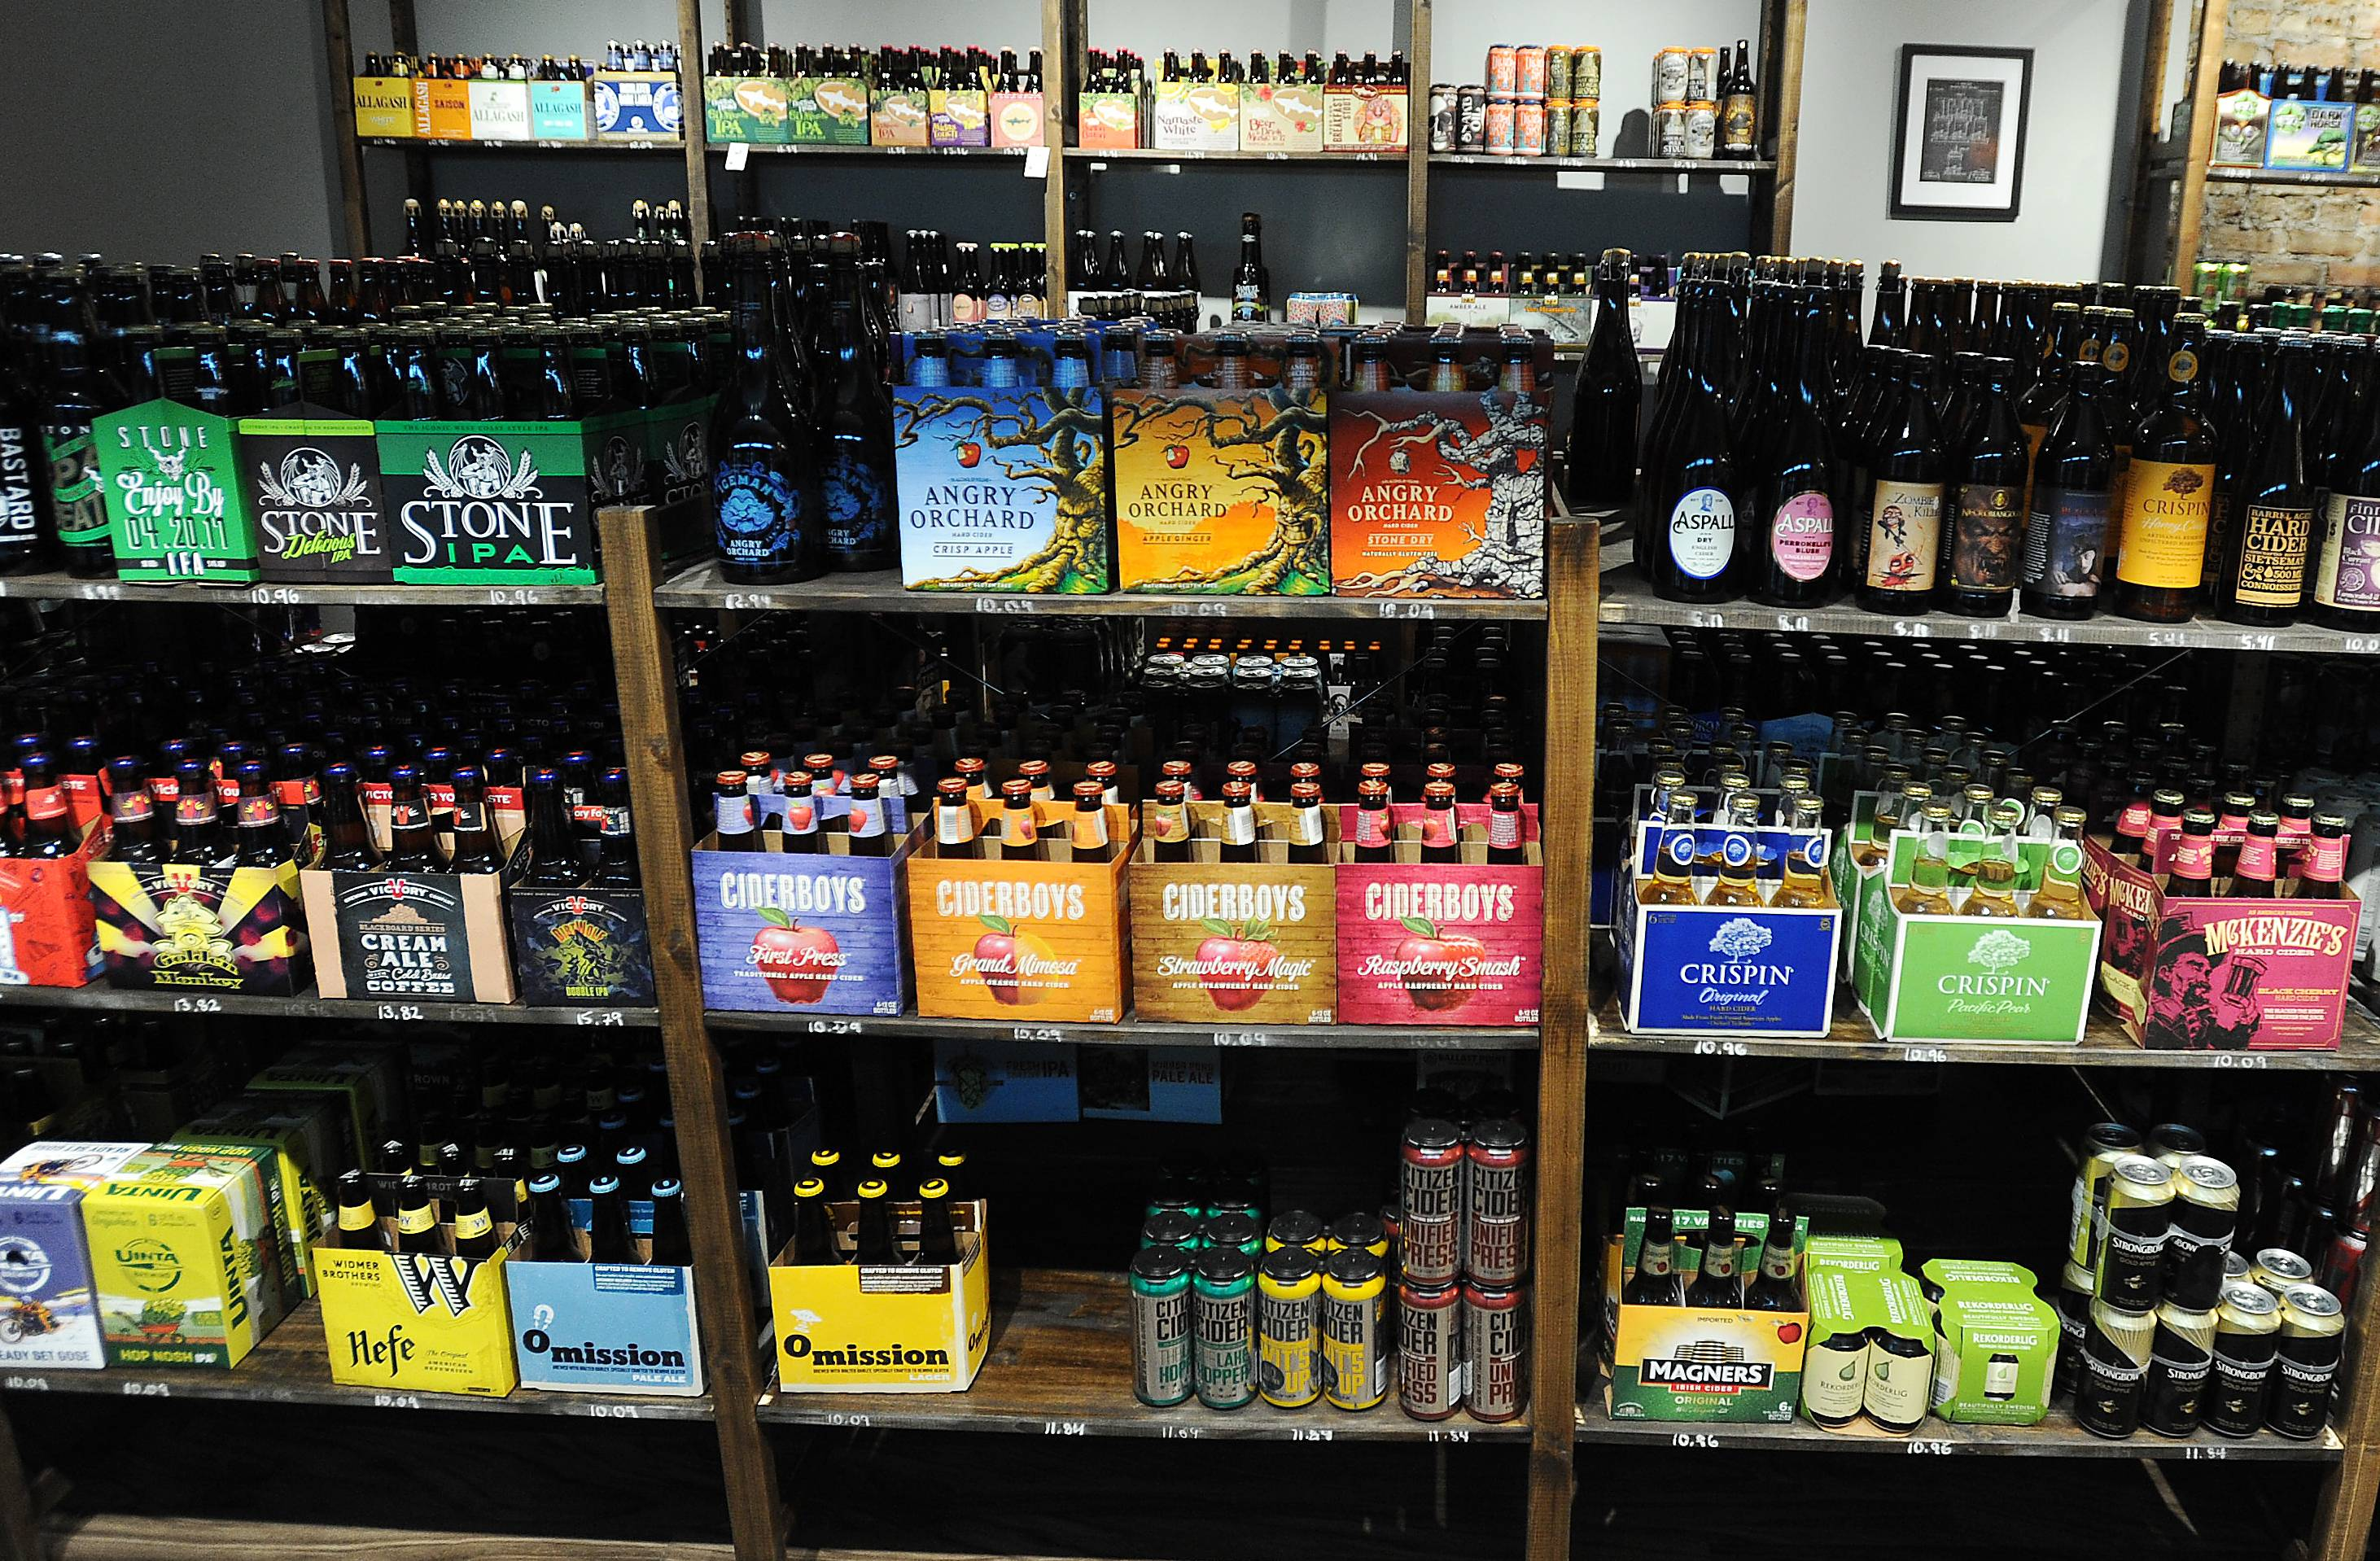 Beer on the Wall offers about 600 varieties for on-site consumption or take-away at its store in Park Ridge. Its owners now have plans to open a second location in Arlington Heights.